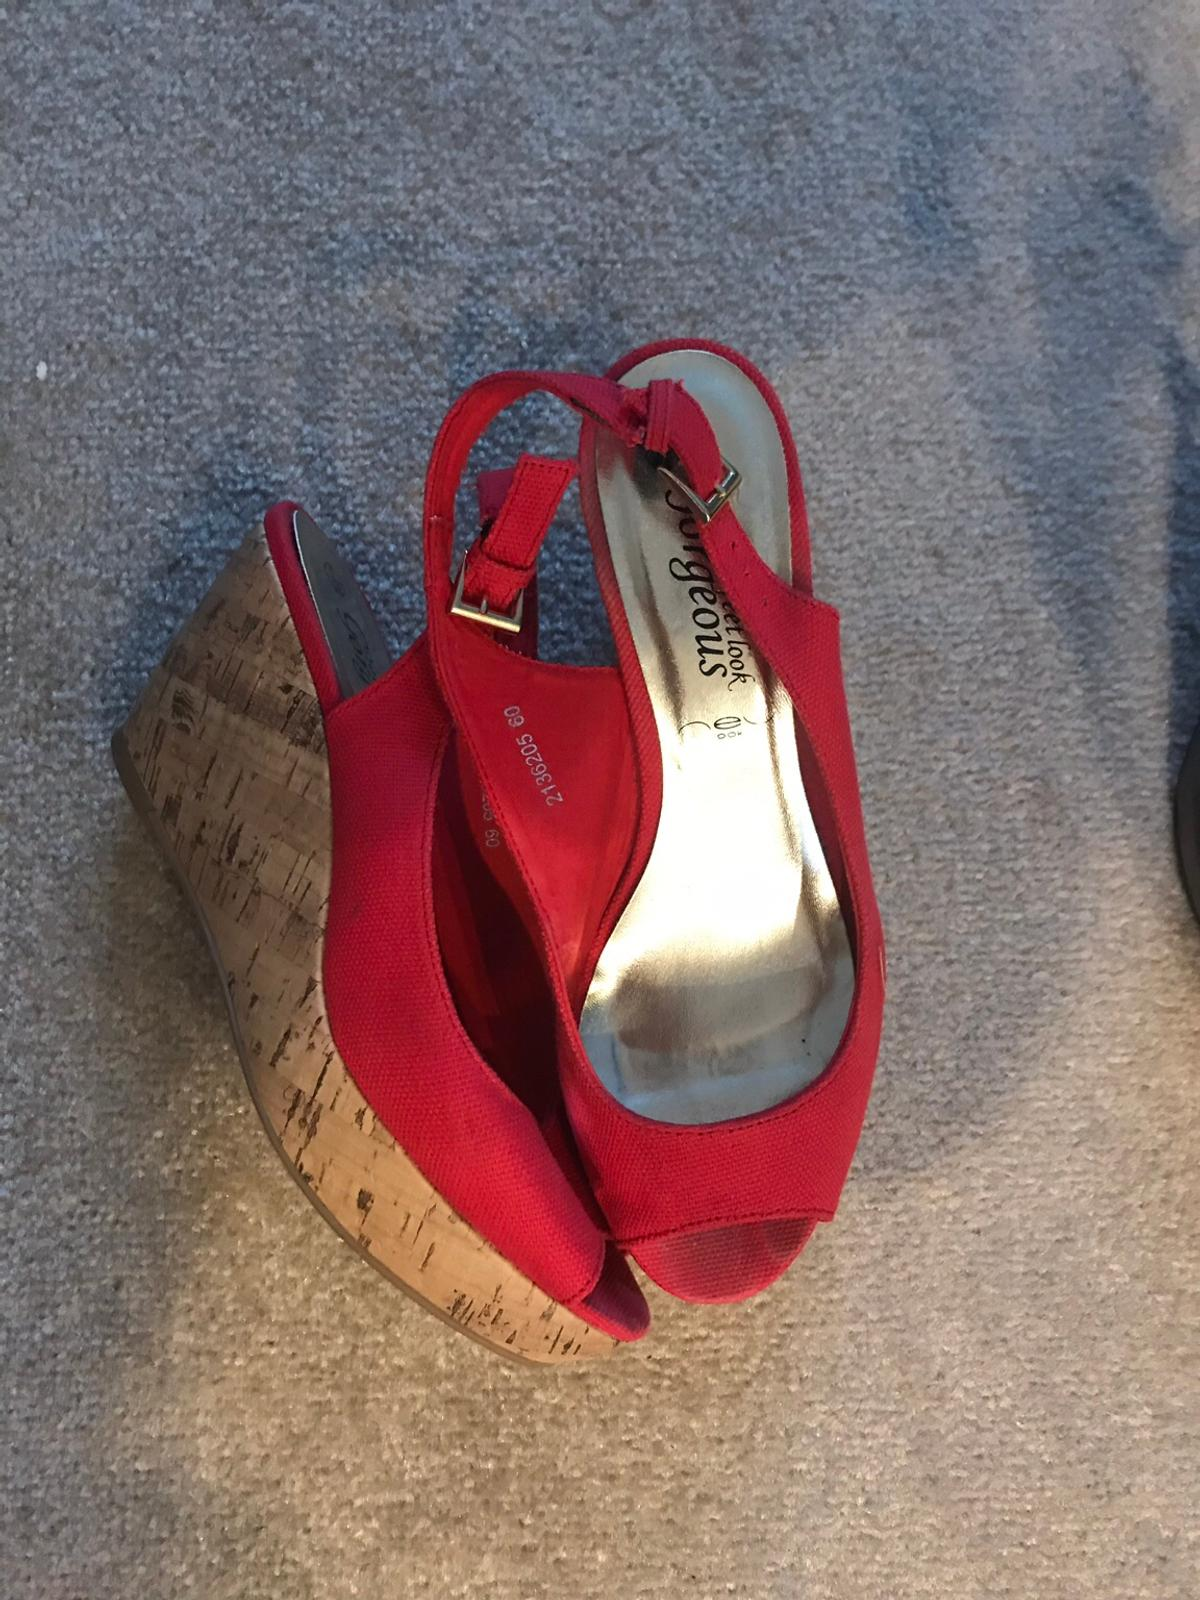 Bargain! Woman shoes for sale, size UK5(38).Good condition, good brands mostly NEXT.